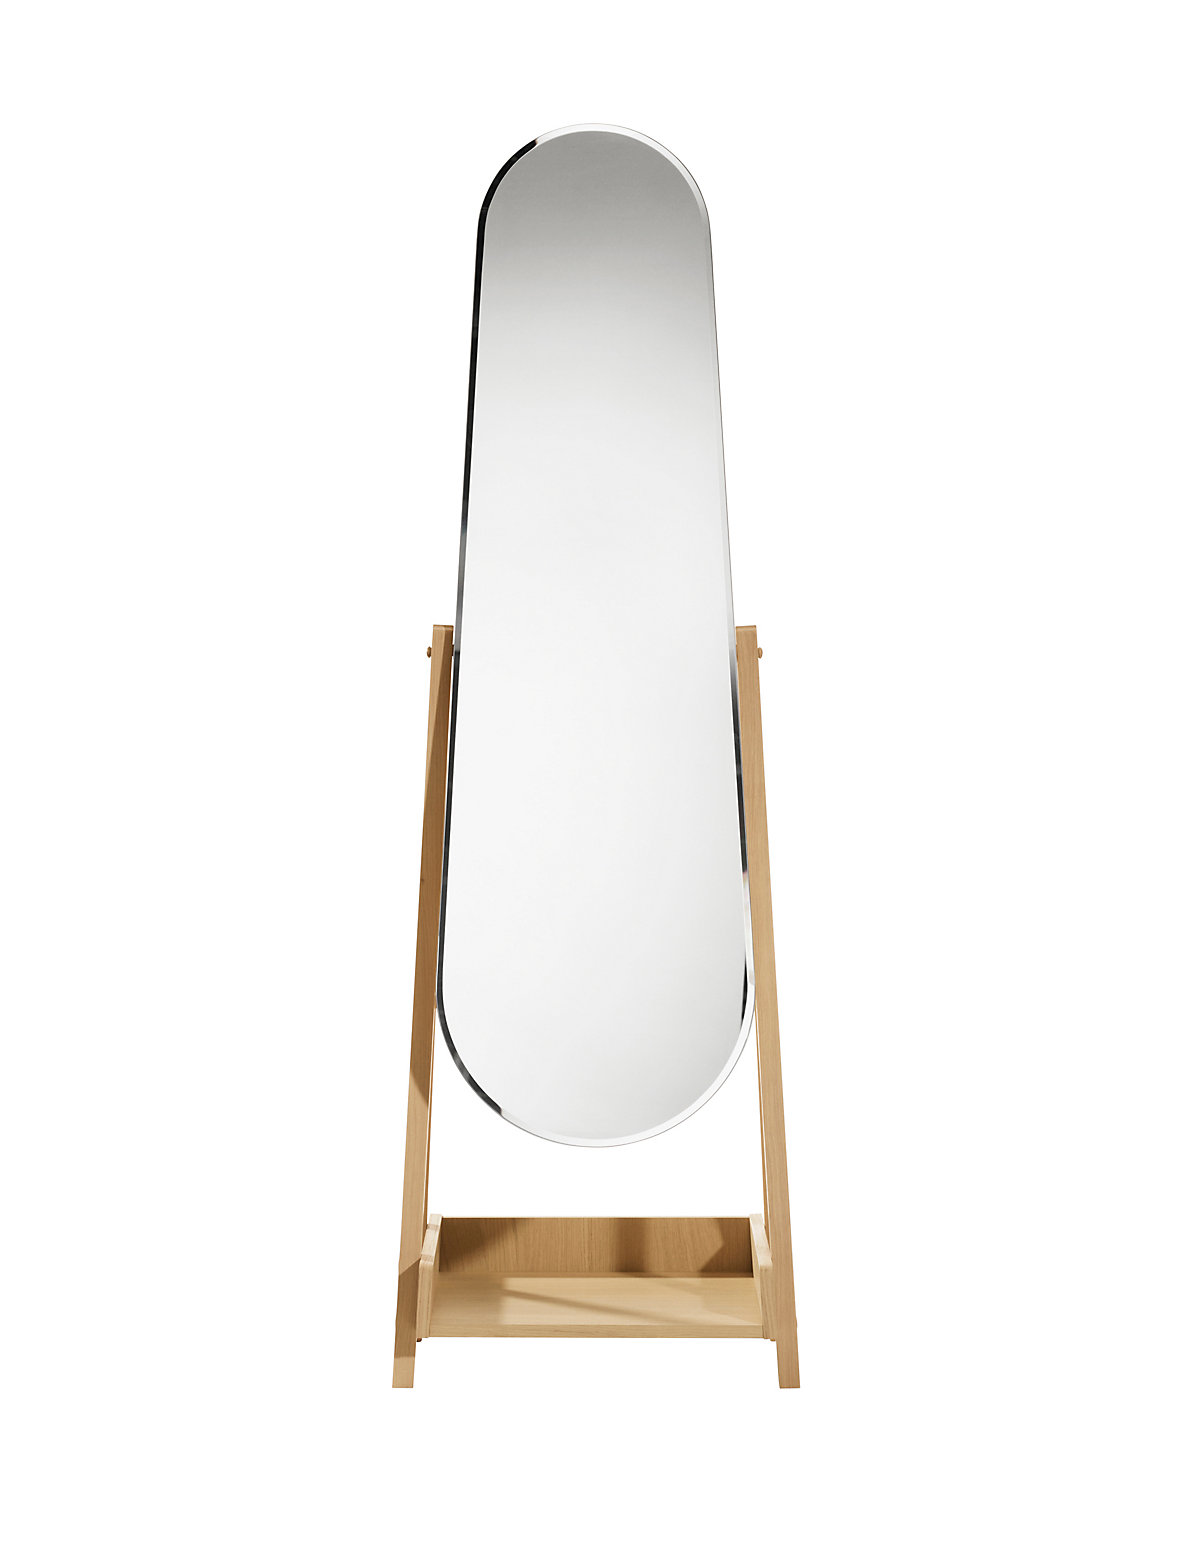 Free standing mirror shop for cheap house accessories for Mirror 40cm wide